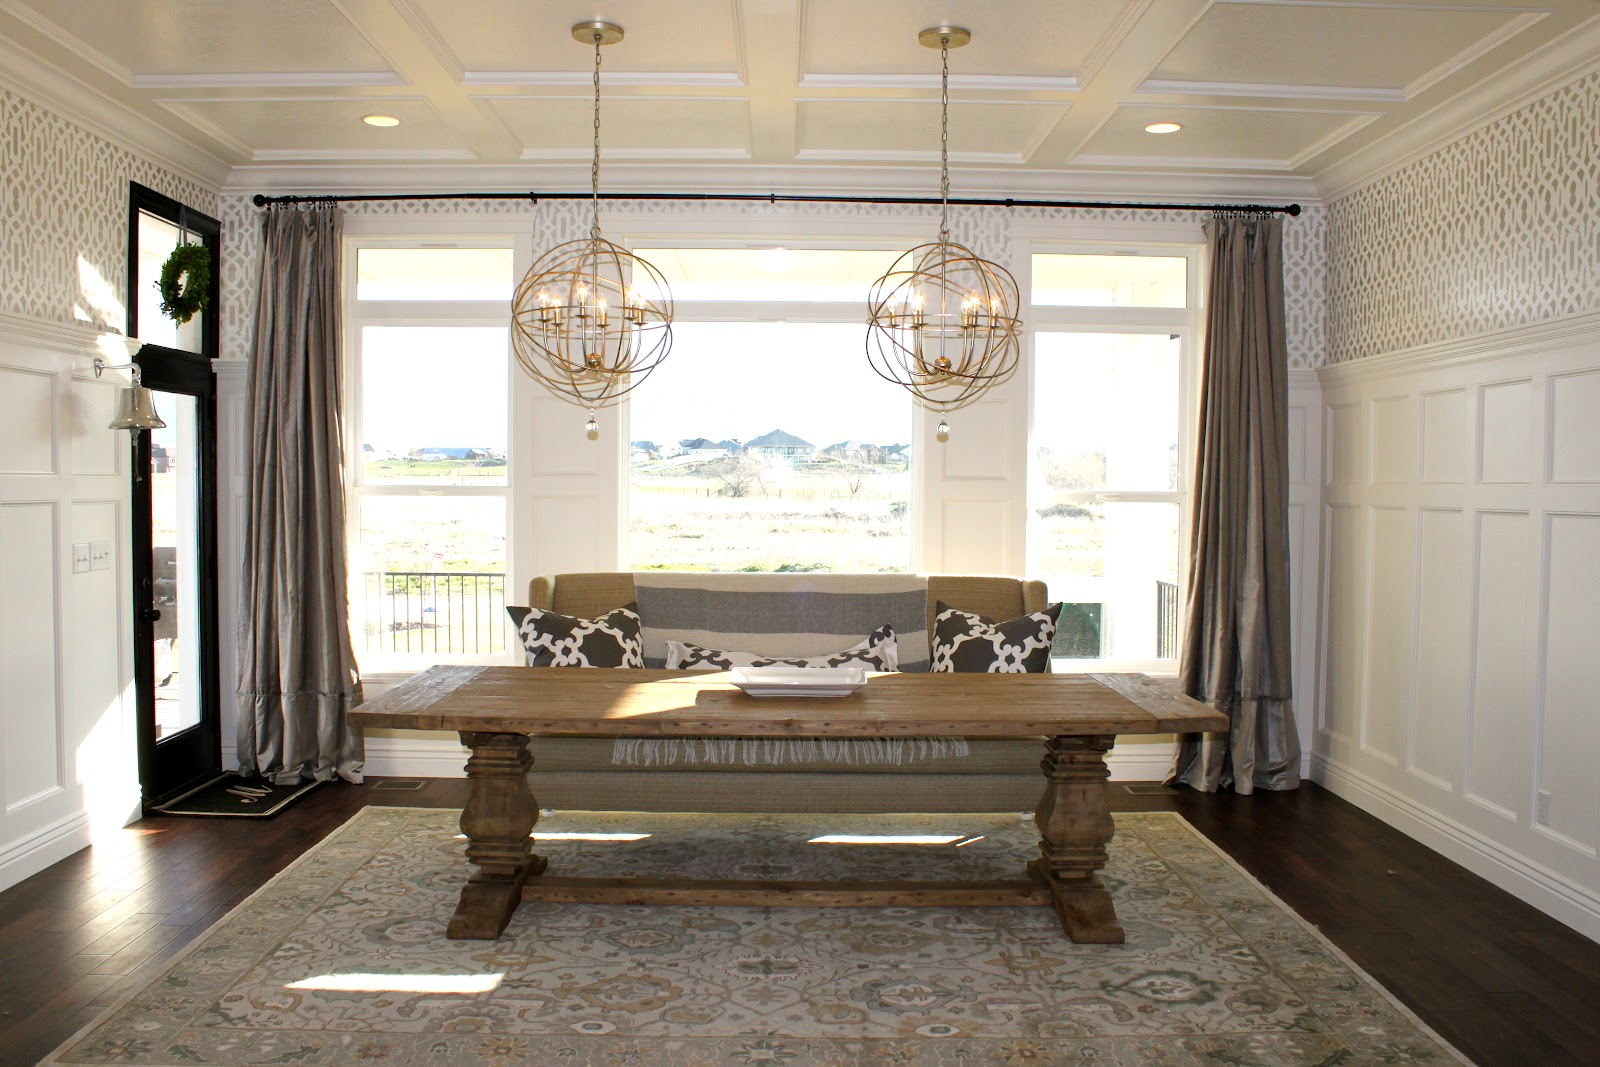 Header Settees and Dining Tables : settee3 from decorallure.blogspot.com size 1600 x 1067 jpeg 313kB